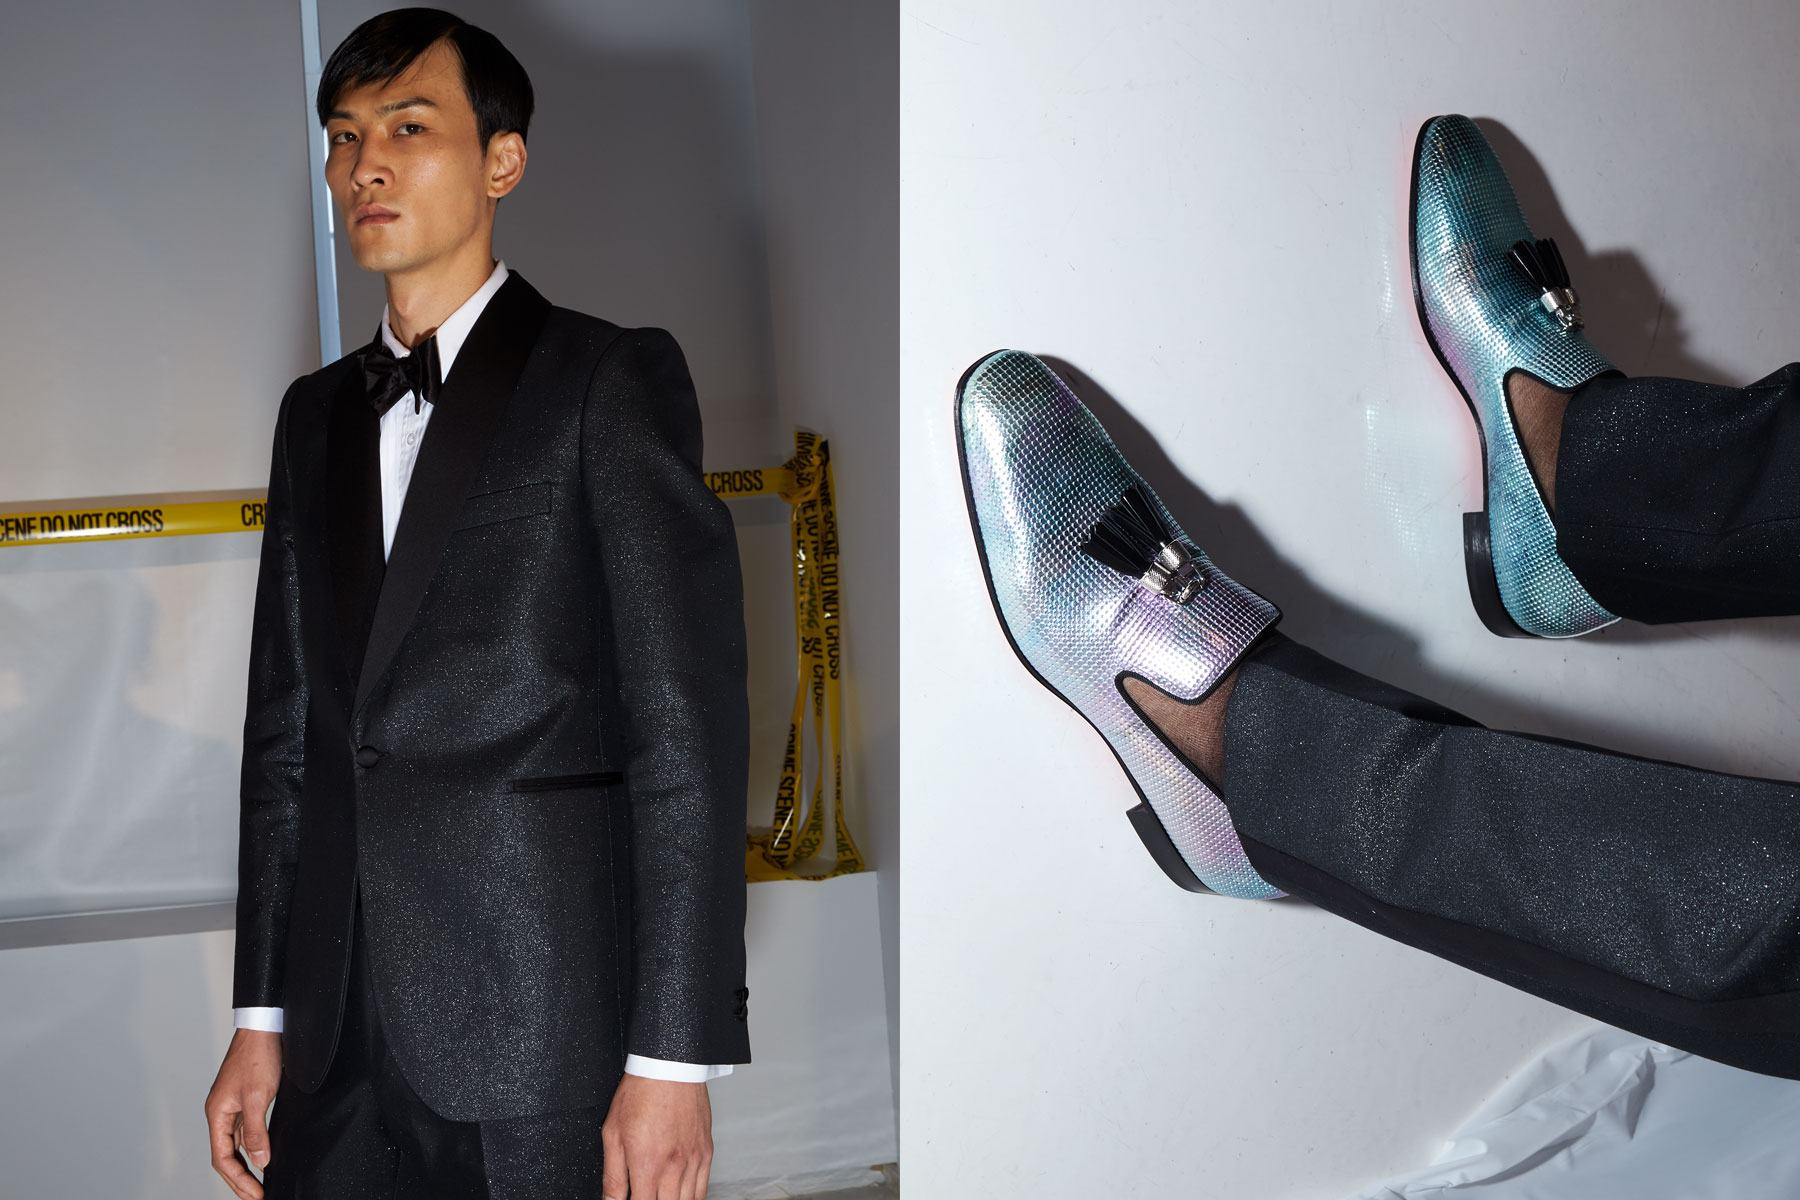 A tuxedo & Christian Louboutin loafers backstage at David Hart Spring 2020 menswear collection. Photography by Alexander Thompson for Ponyboy magazine.